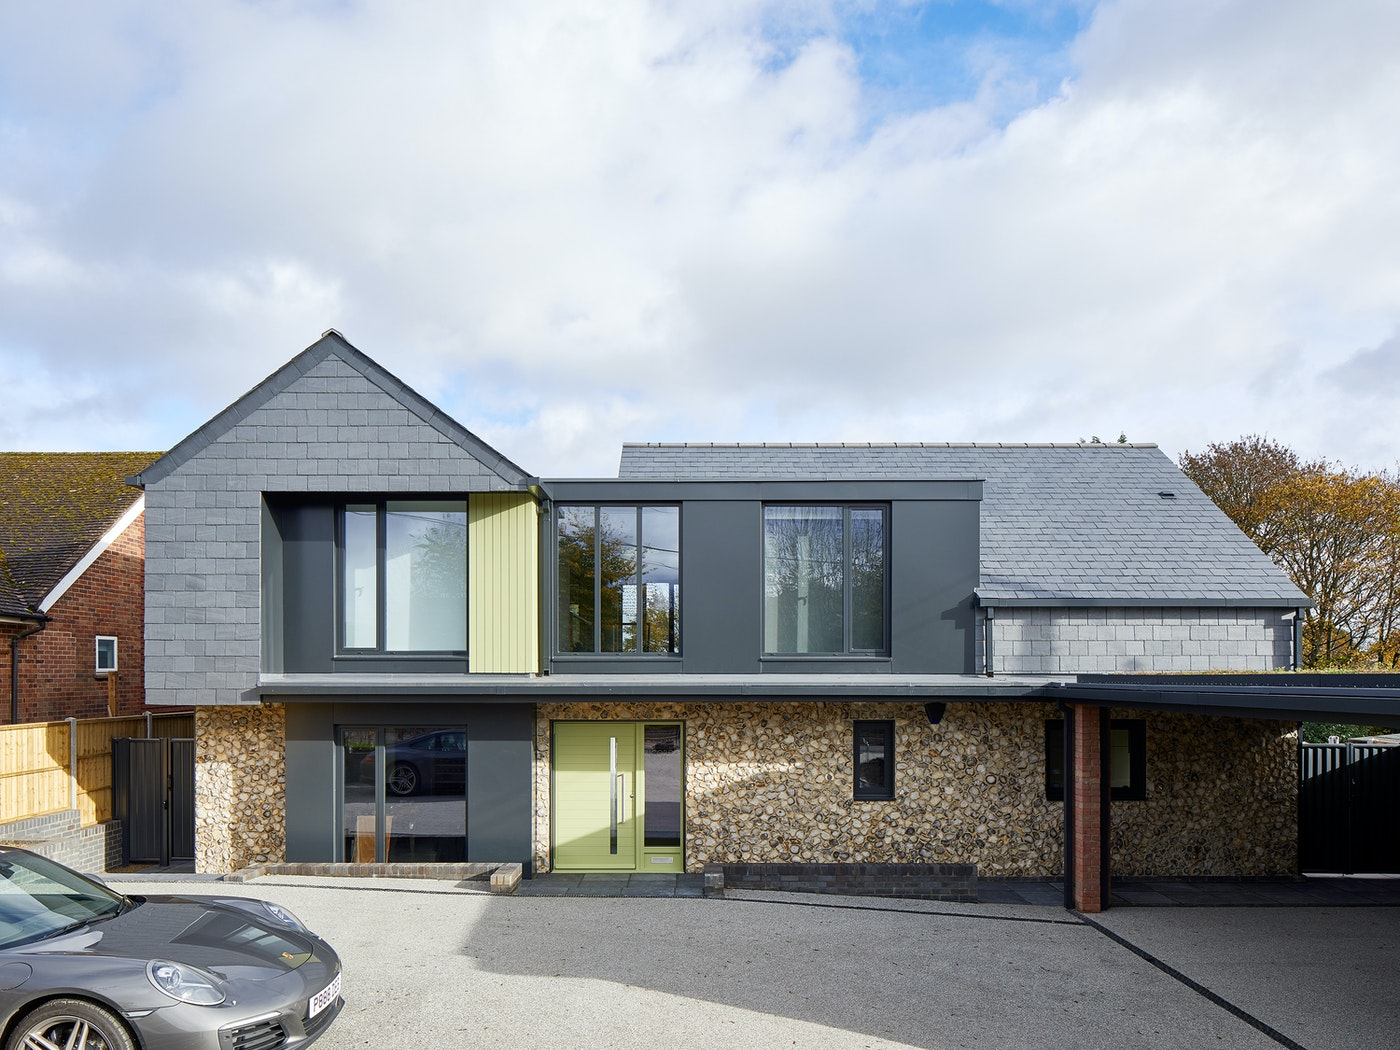 Our Terano green door draws the eye on this mixed material frontage while the artfully placed matching cladding on the second floor literally takes the whole thing to a new level